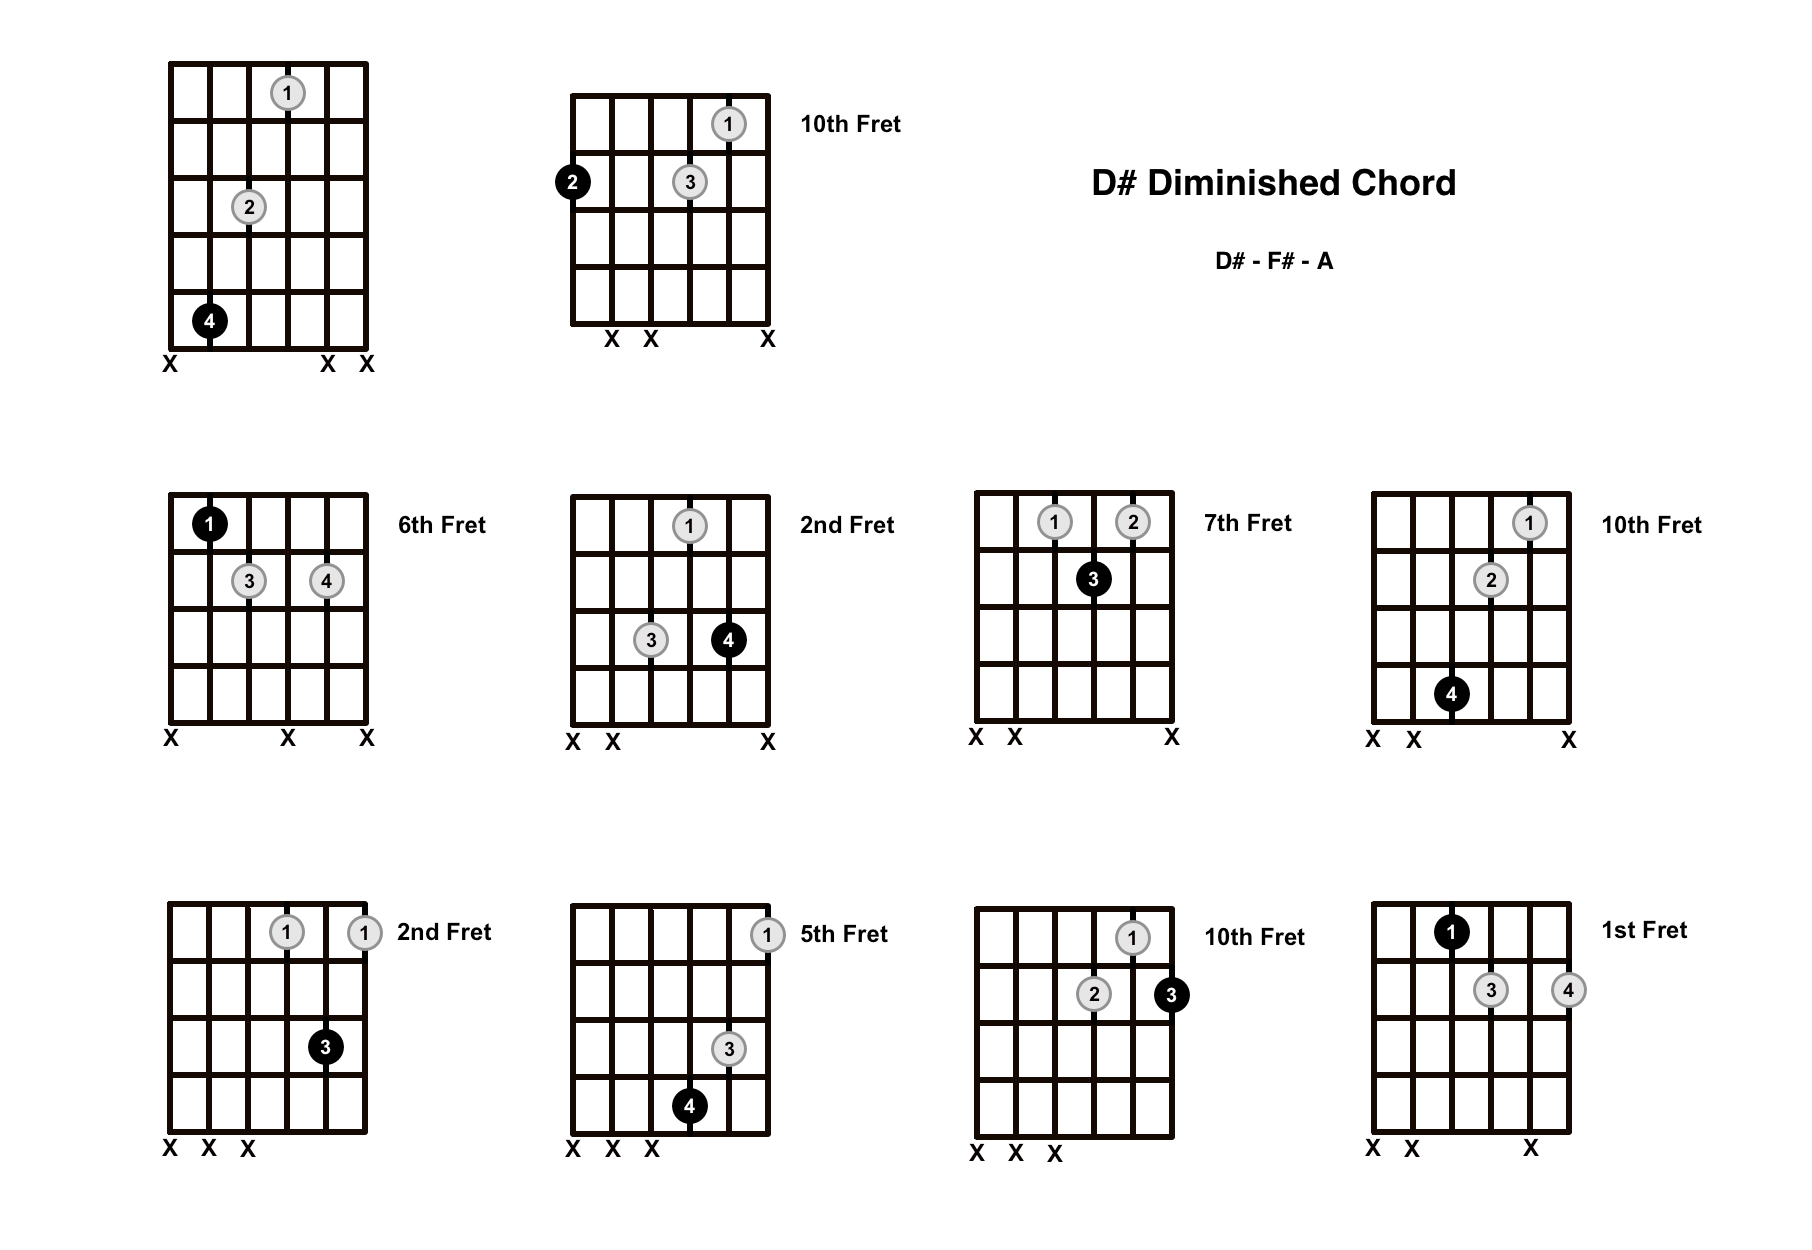 D Sharp Diminished Chord on the Guitar (D# dim) – Diagrams, Finger Positions, Theory